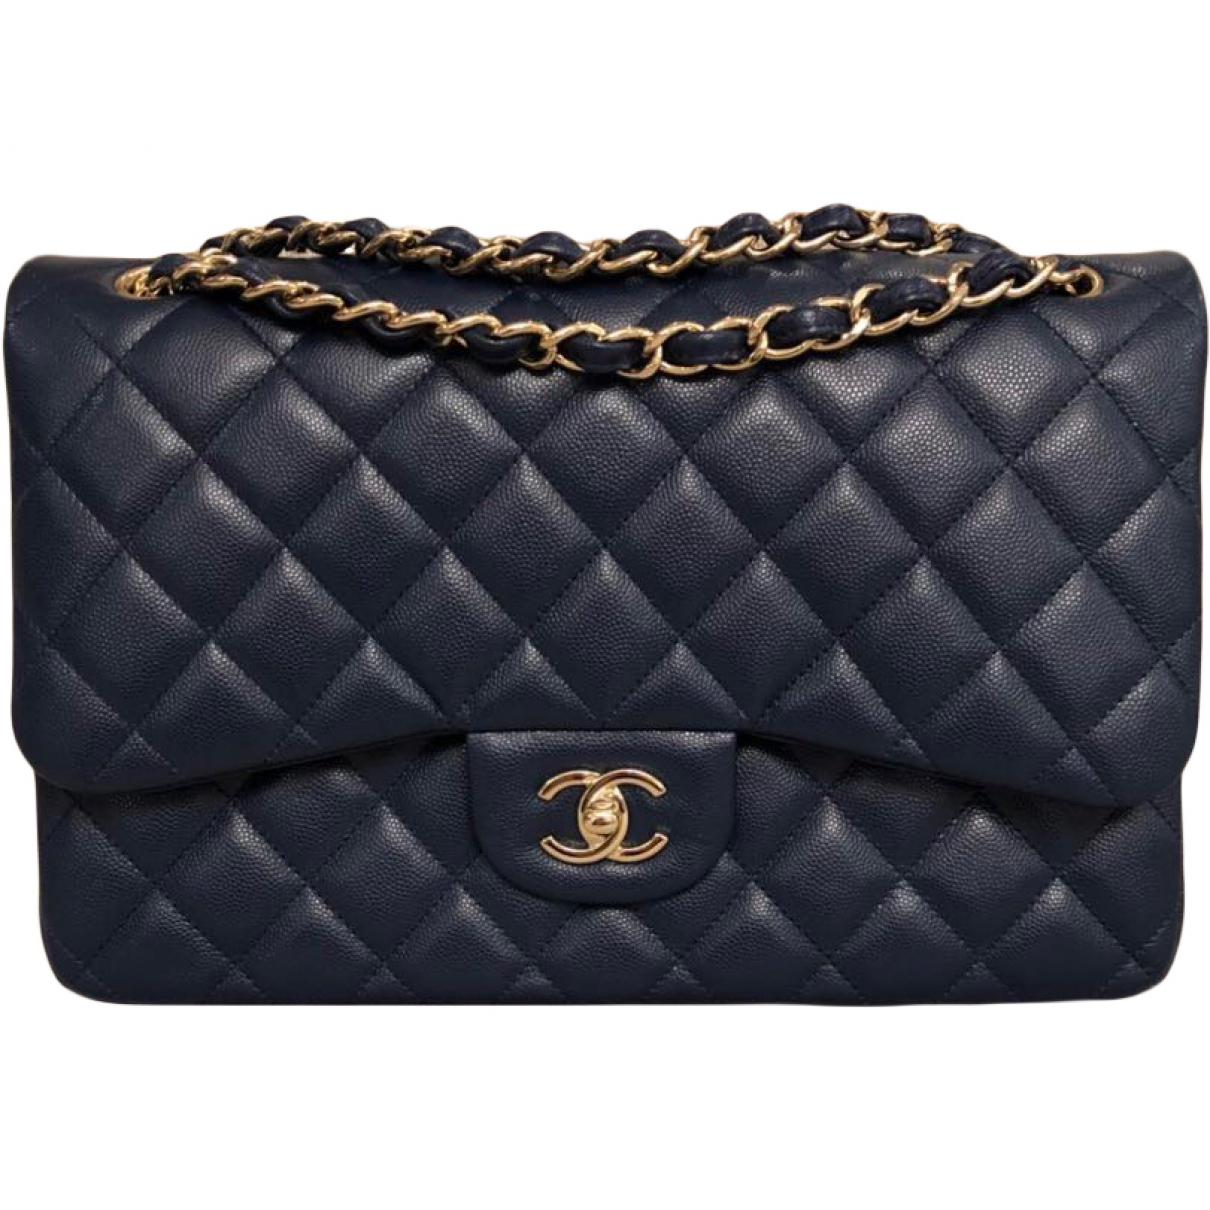 Lyst - Sac à main Timeless en cuir Chanel en coloris Bleu c09166dfdff